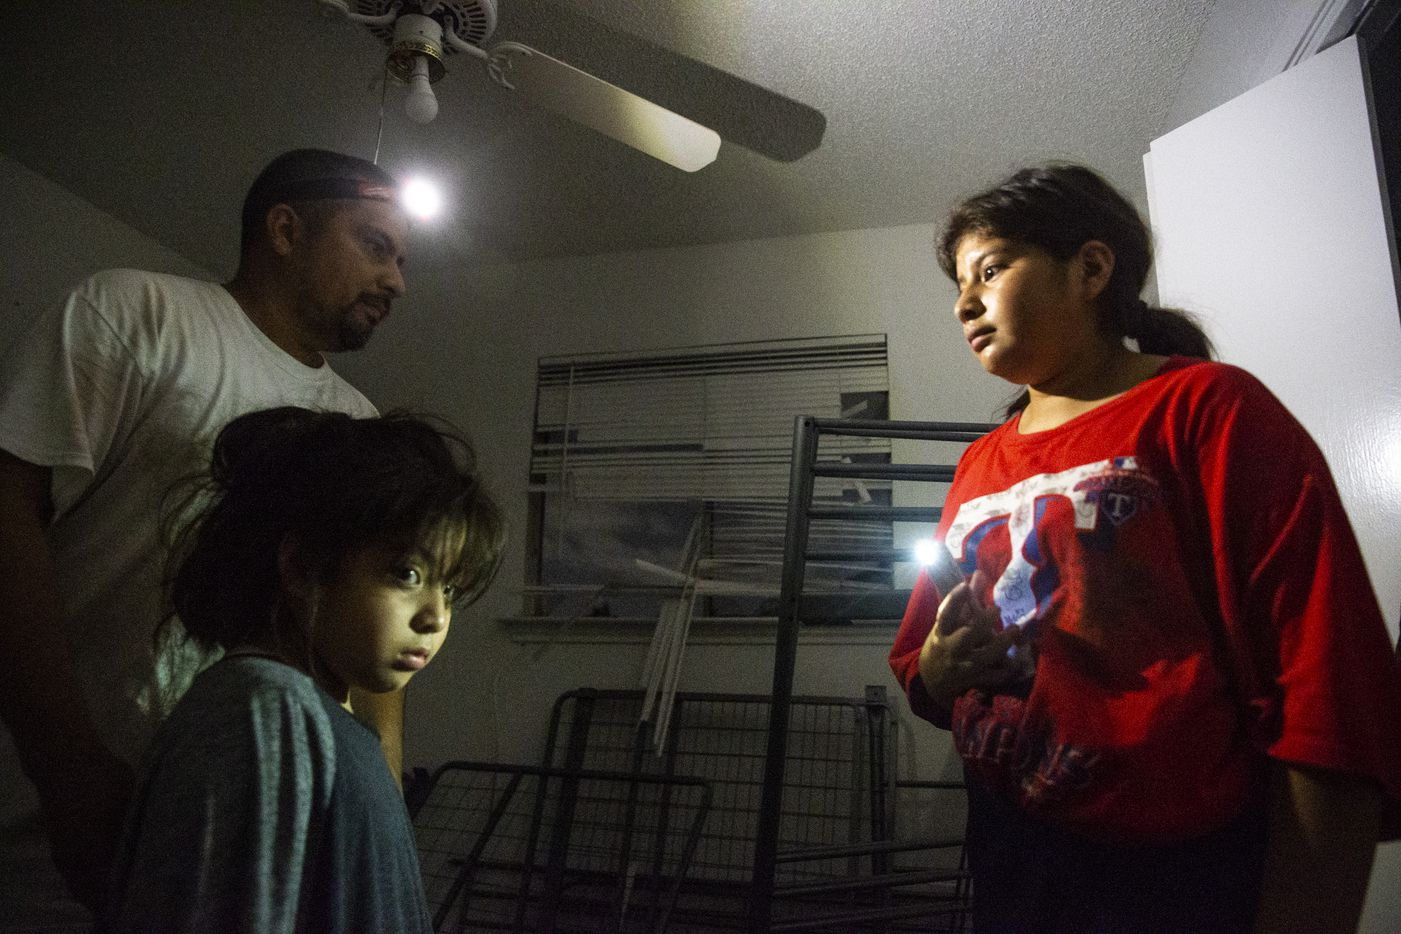 Antonio Gonzalez (left) and his daughters Naia (bottom left), 5, and Giovanna, 14, inspect their home on Glenrio Lane after it sustained significant damage after a tornado hit parts of northern Dallas on Sunday, Oct. 20, 2019.